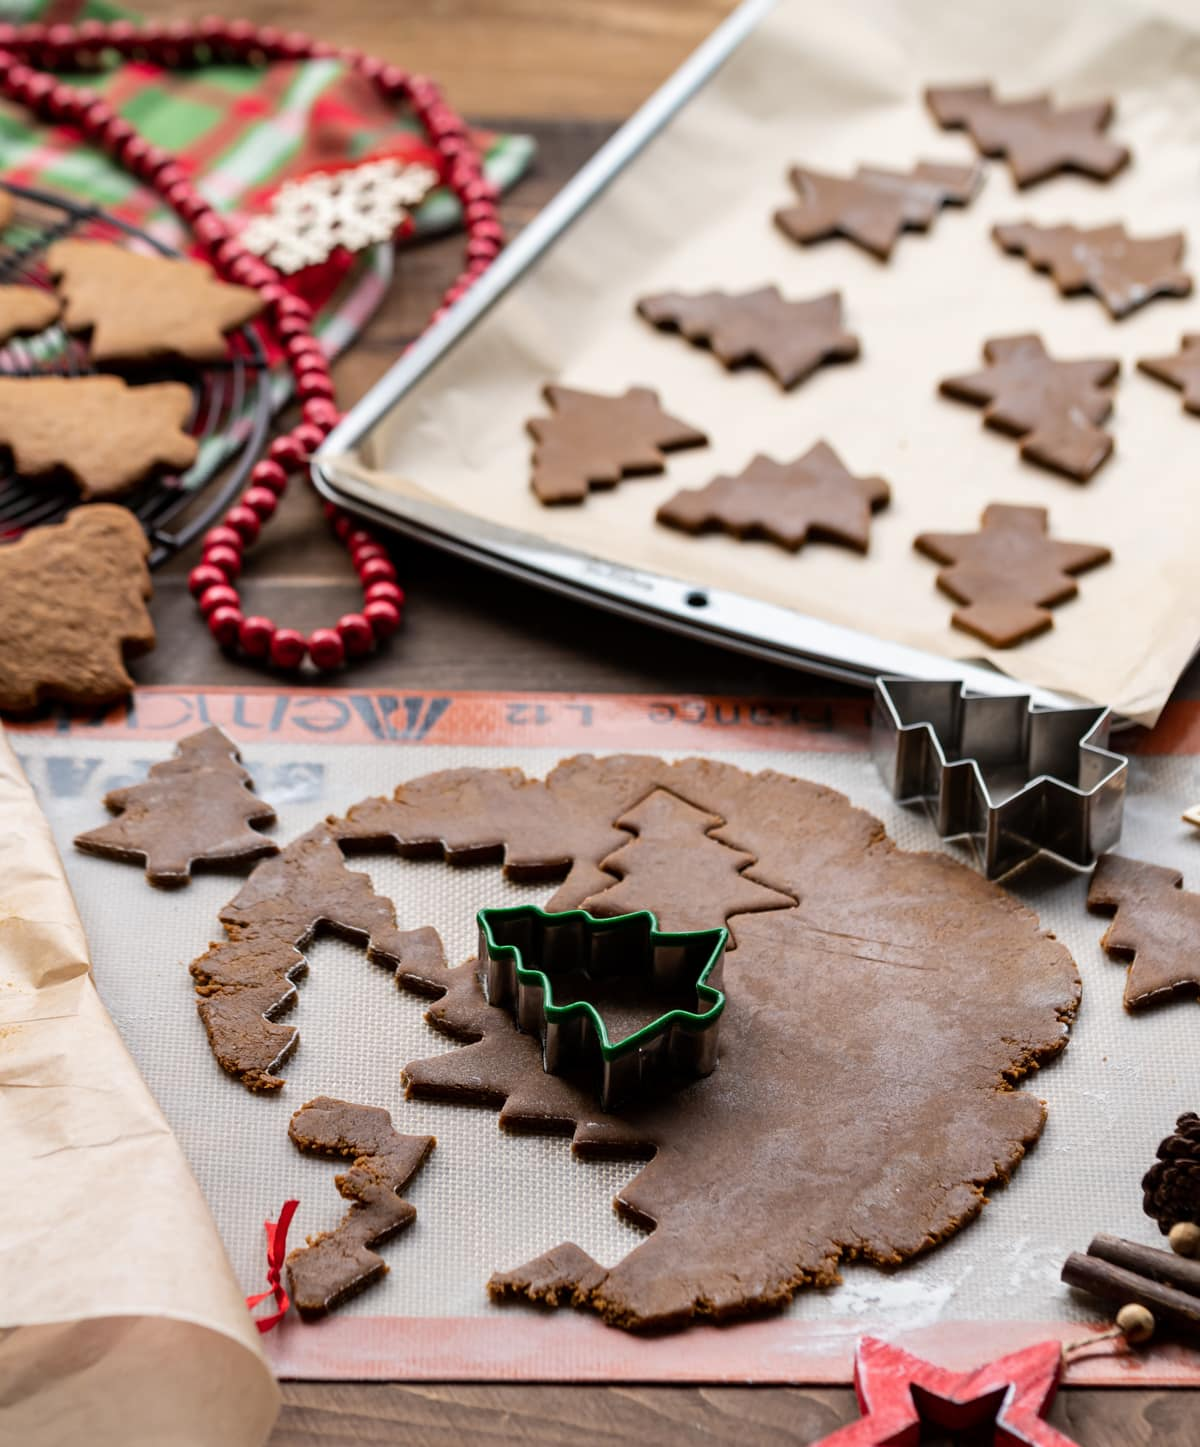 gingerbread cookie dough with Christmas tree shaped cookie cutter, cut out cookies on a baking tray